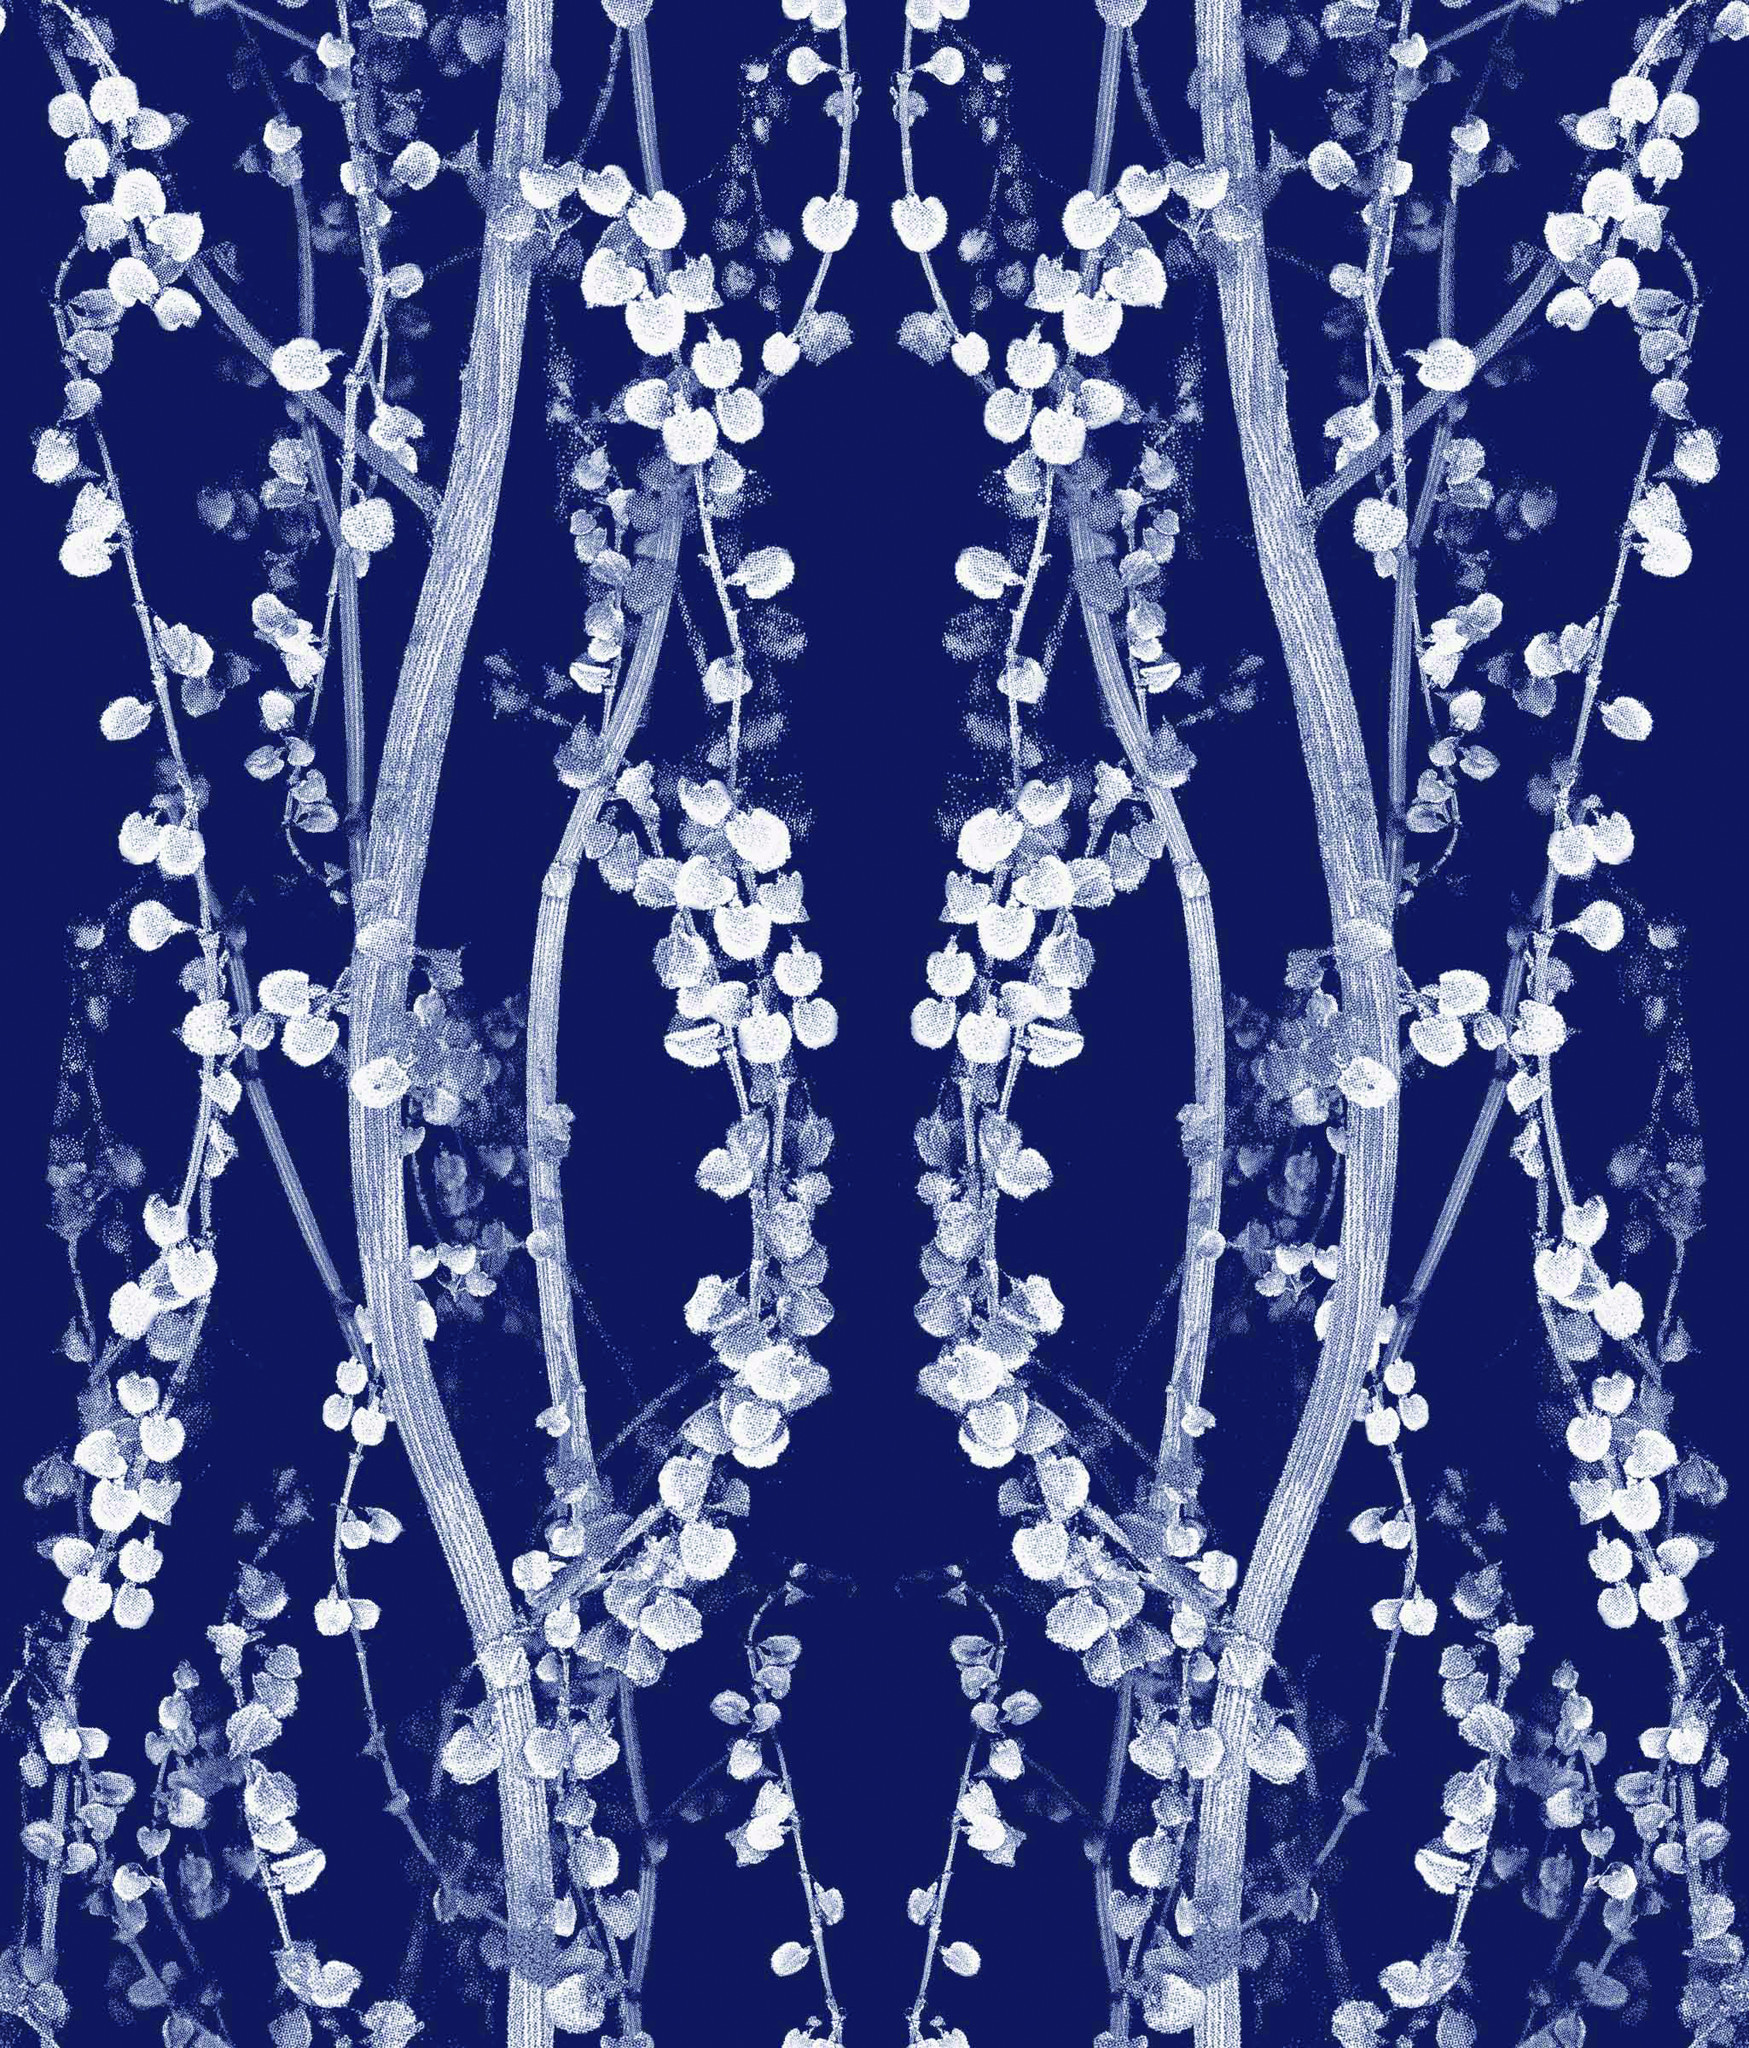 Branches Self Adhesive Wallpaper in Mystery Blue design by tempaper wallpaper for pretty wall decor ideas